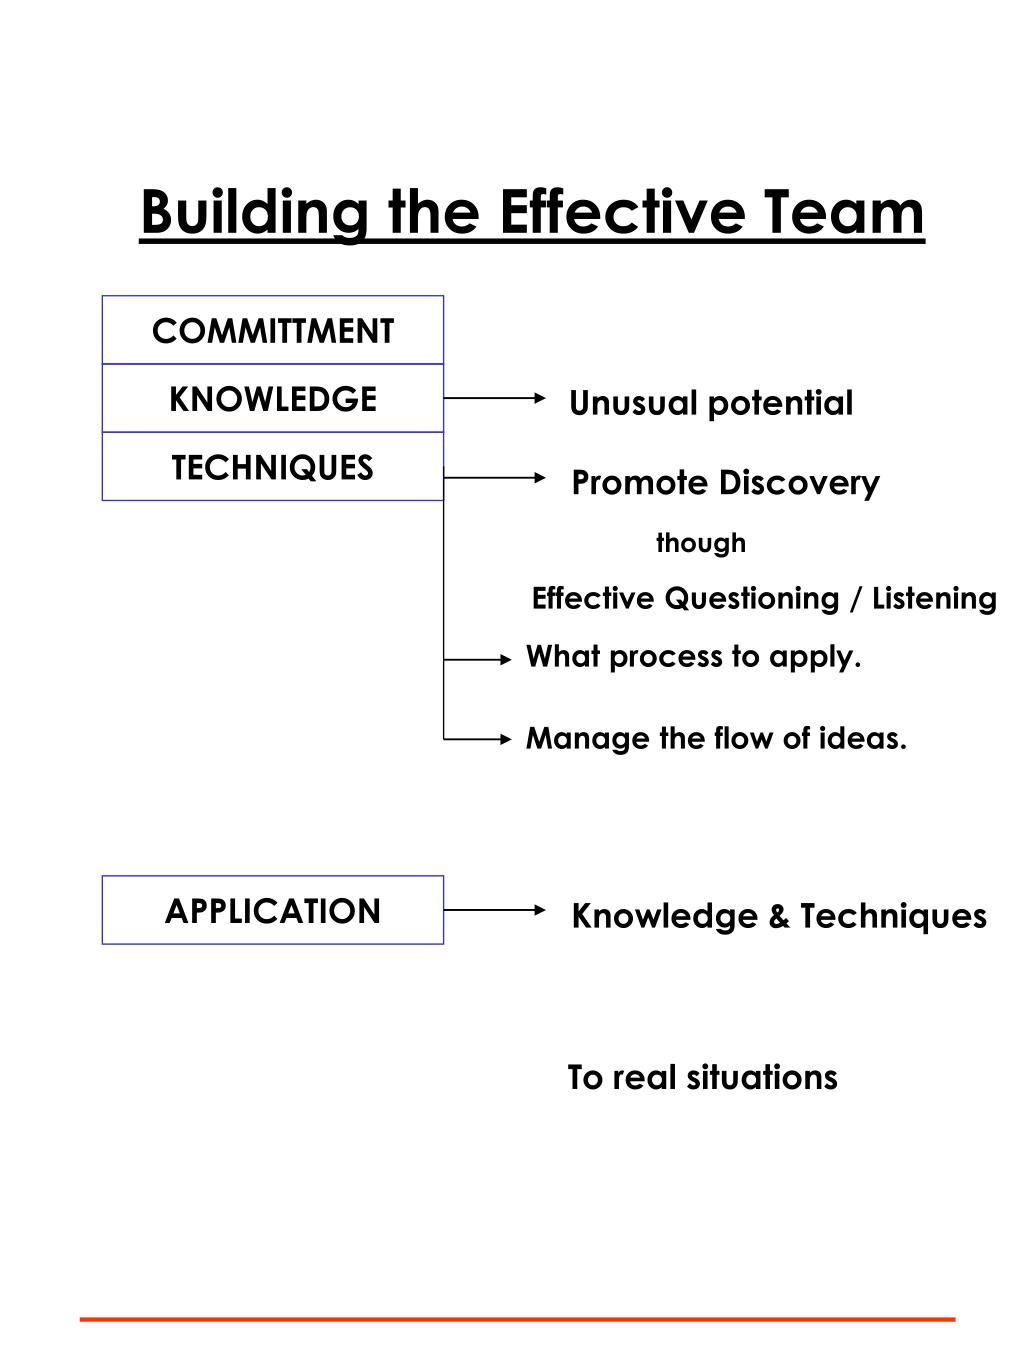 Building the Effective Team